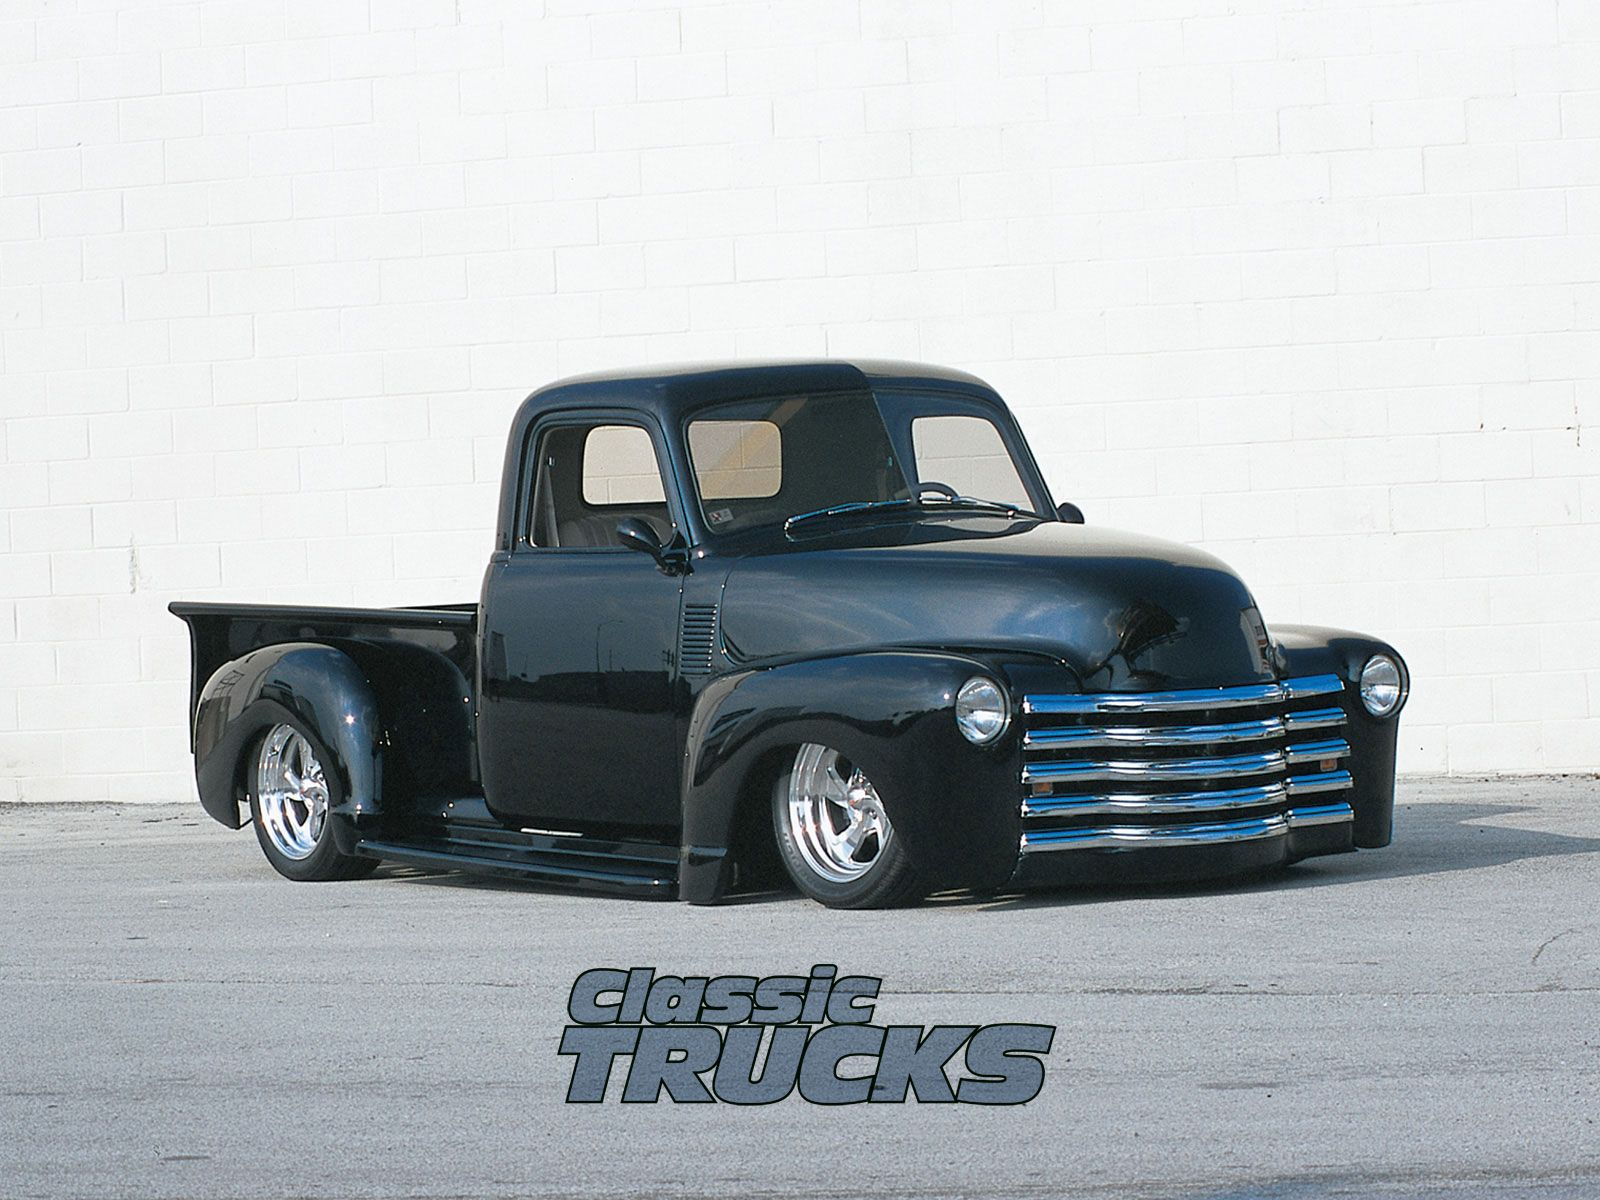 Chevy Pickups Chevy Pickups Chevy Trucks and Chevrolet 1600x1200